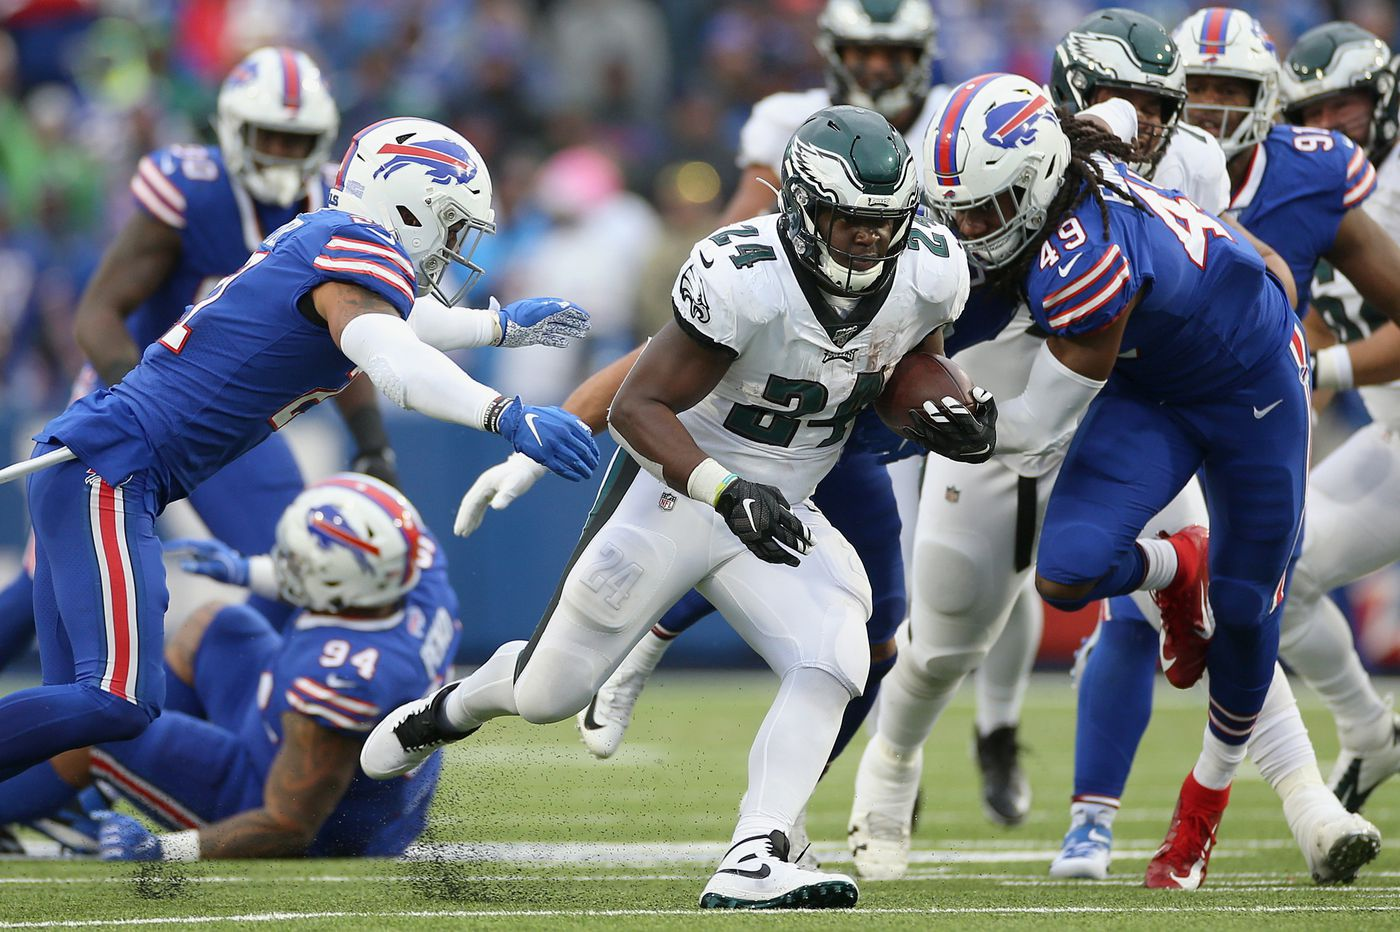 Grading the Eagles: Much-needed high marks in big win over Buffalo Bills | Paul Domowitch